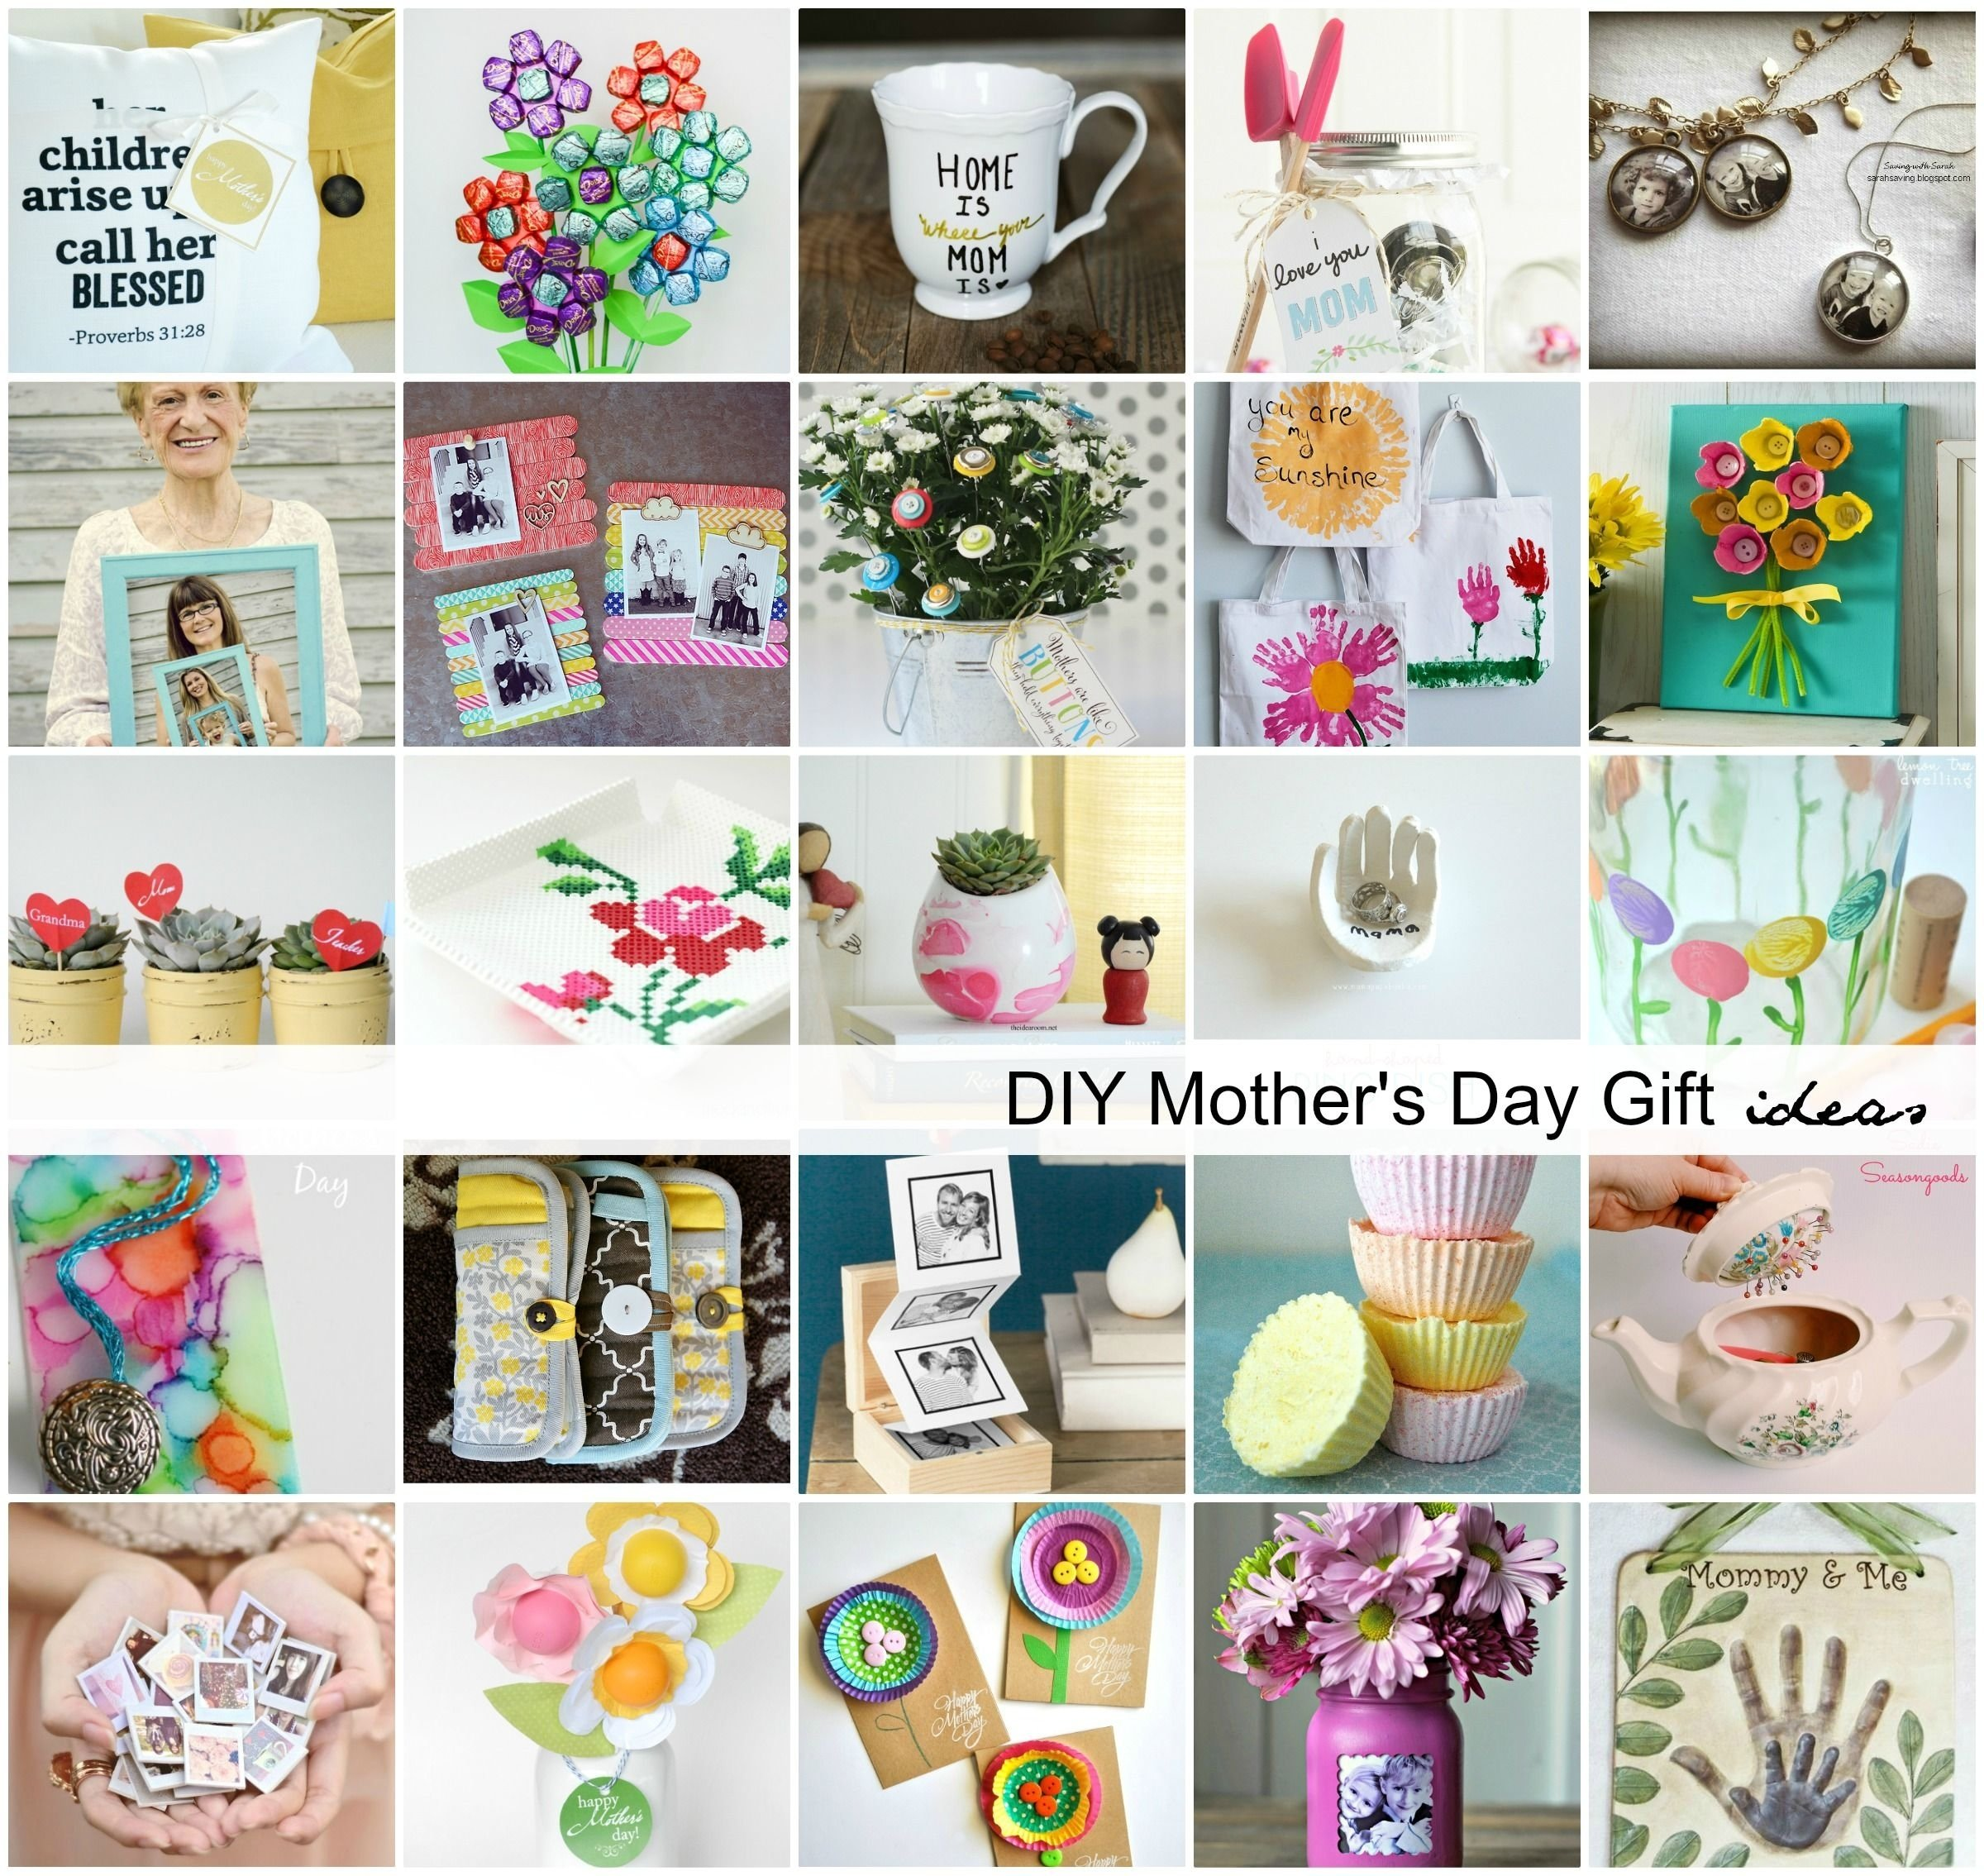 10 Fantastic Gift Ideas For Adult Children handmade mothers day gift ideas gift craft and diy craft projects 5 2021